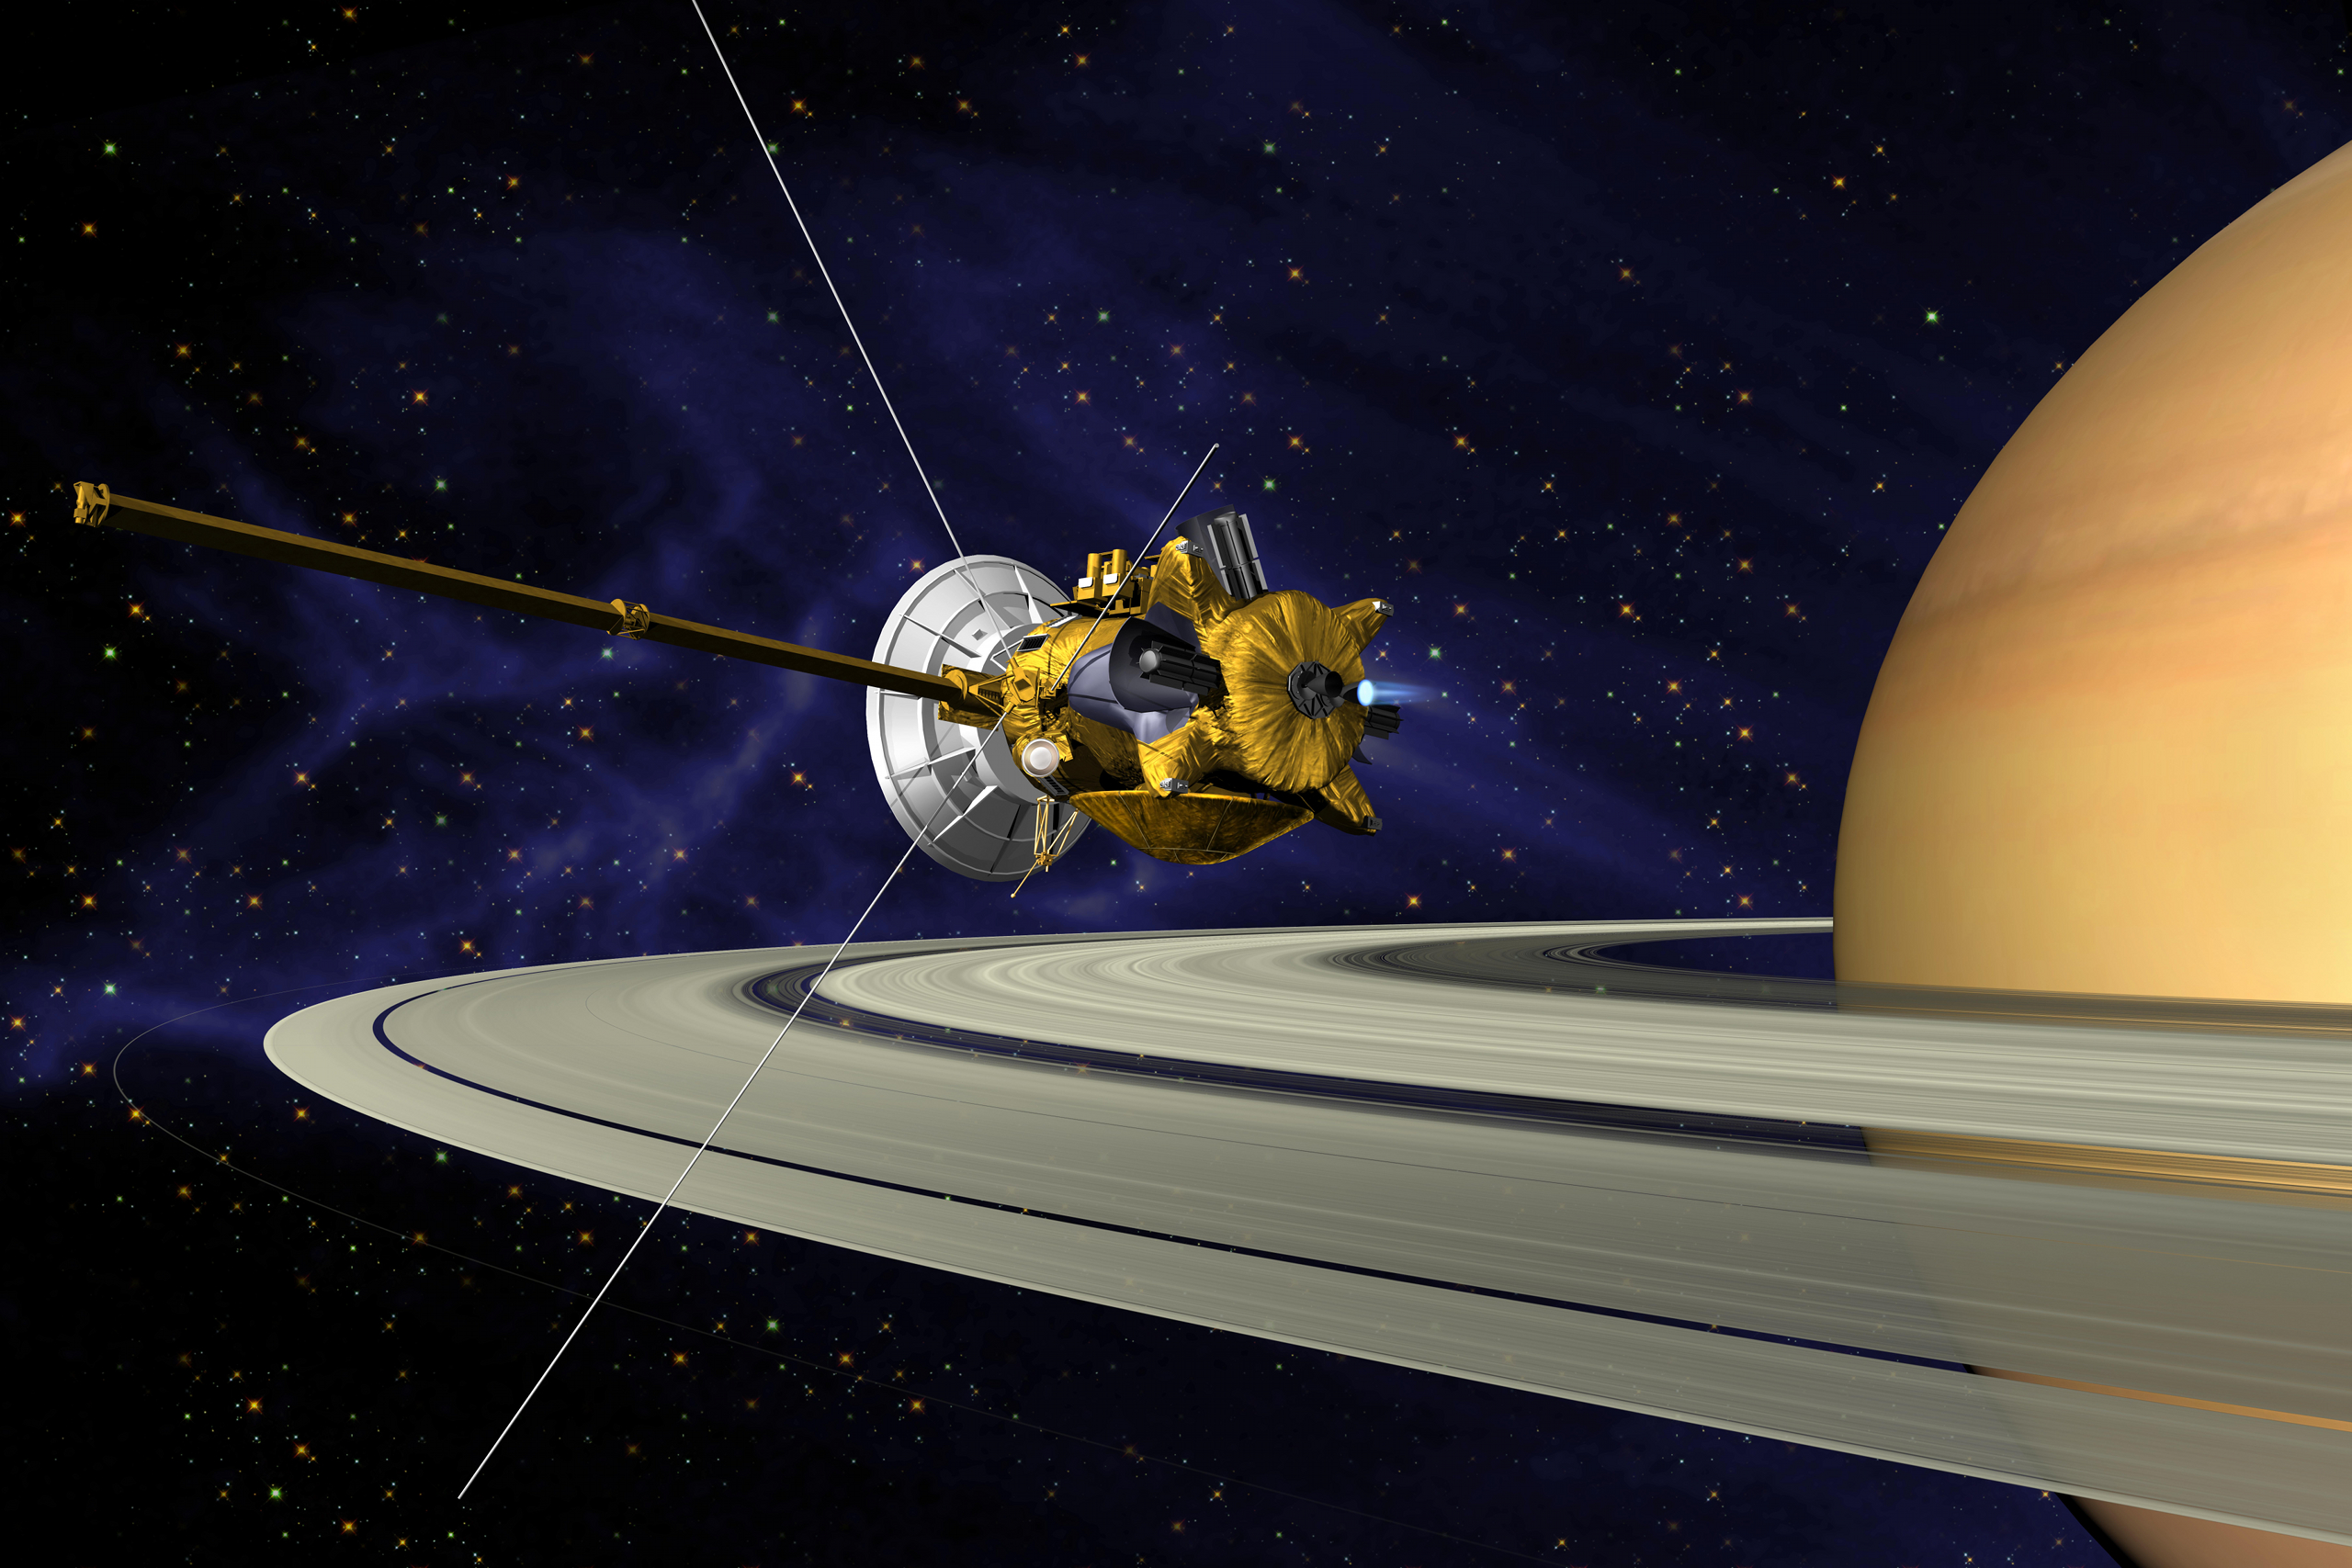 This Week in Space History – March 31, 2005 Cassini, Titan Flyby